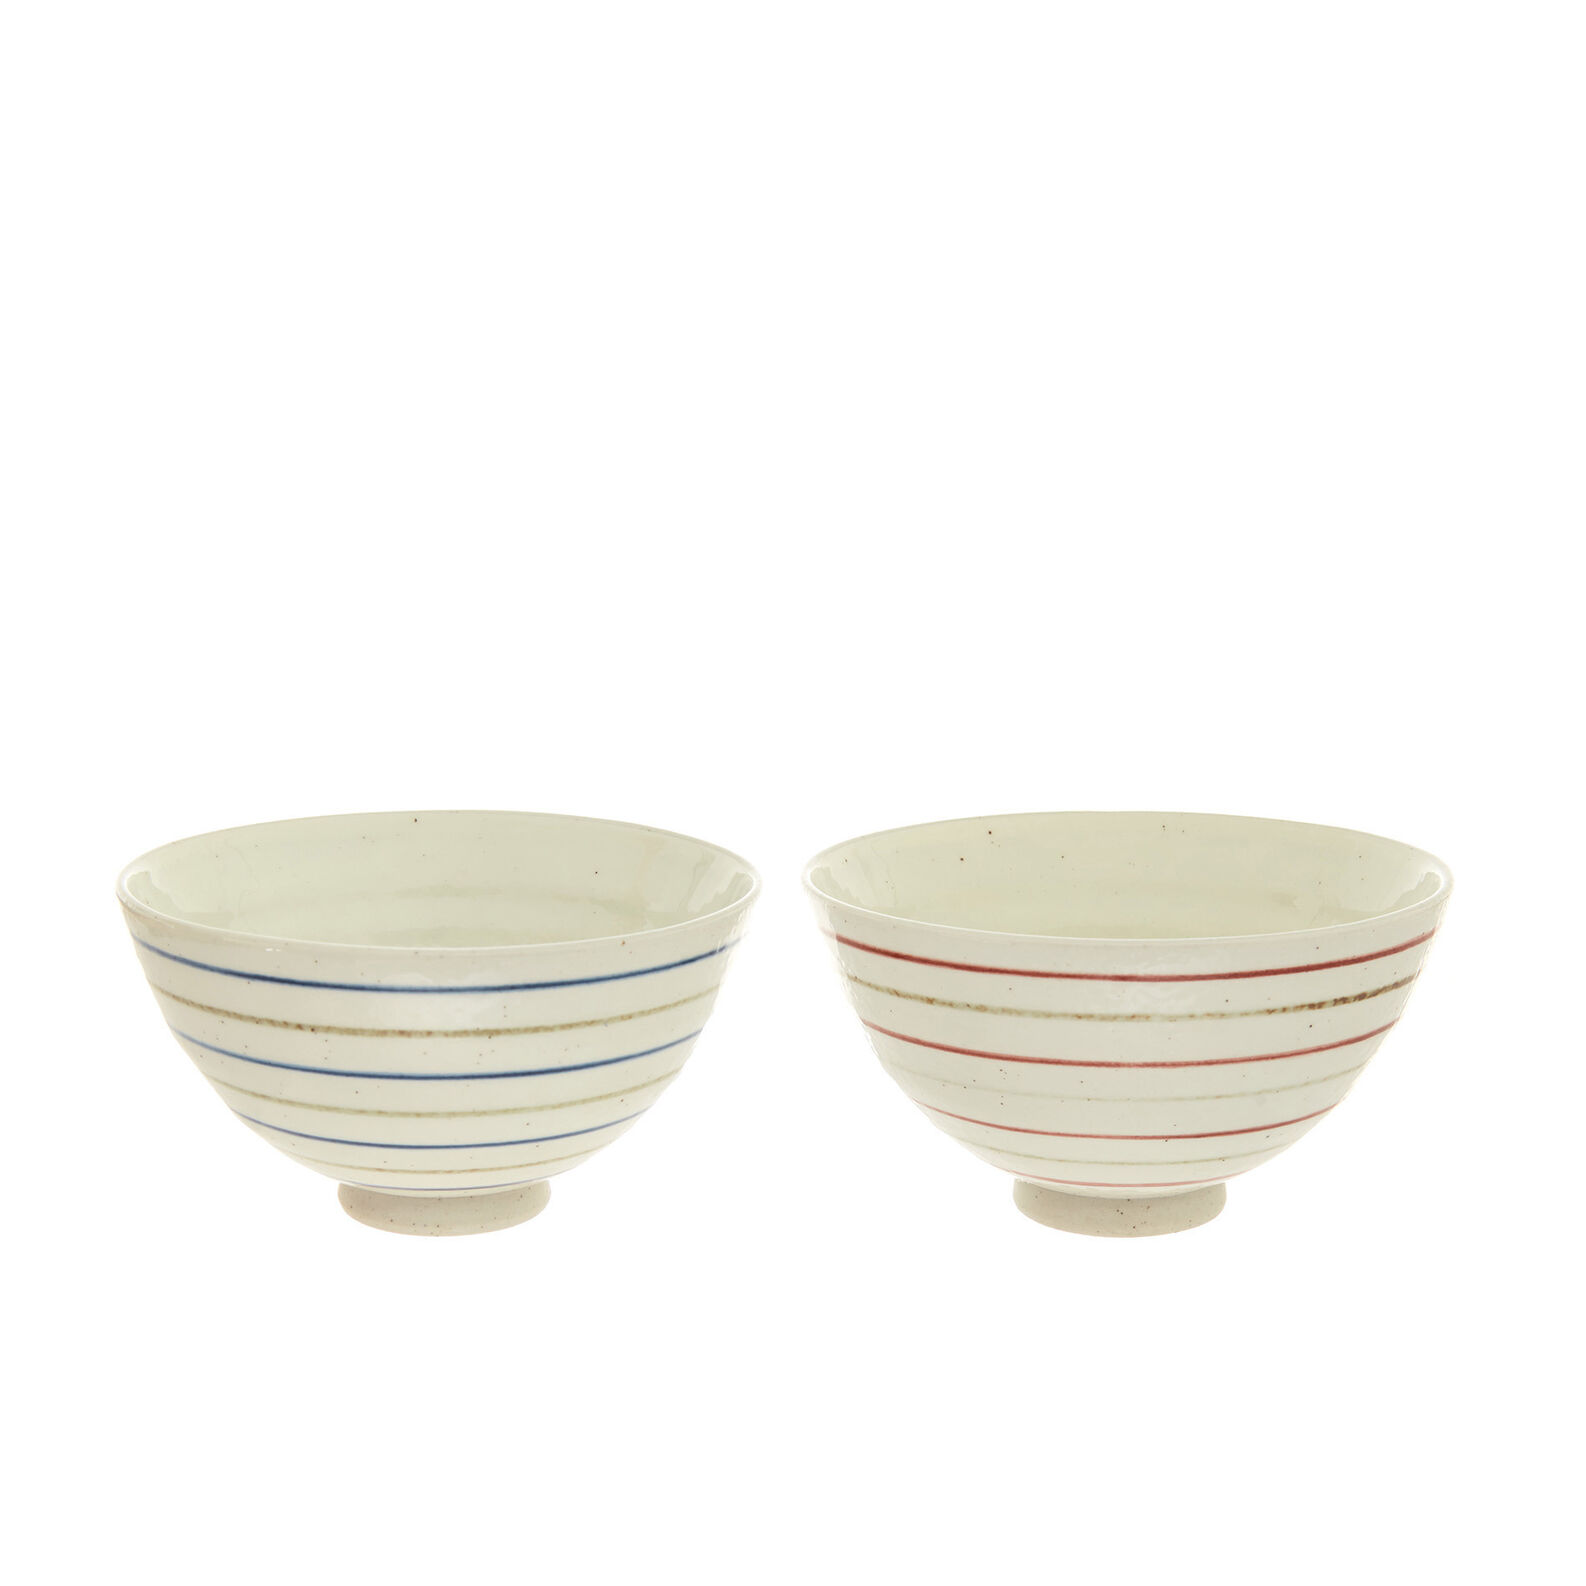 Small stoneware bowls with striped motif